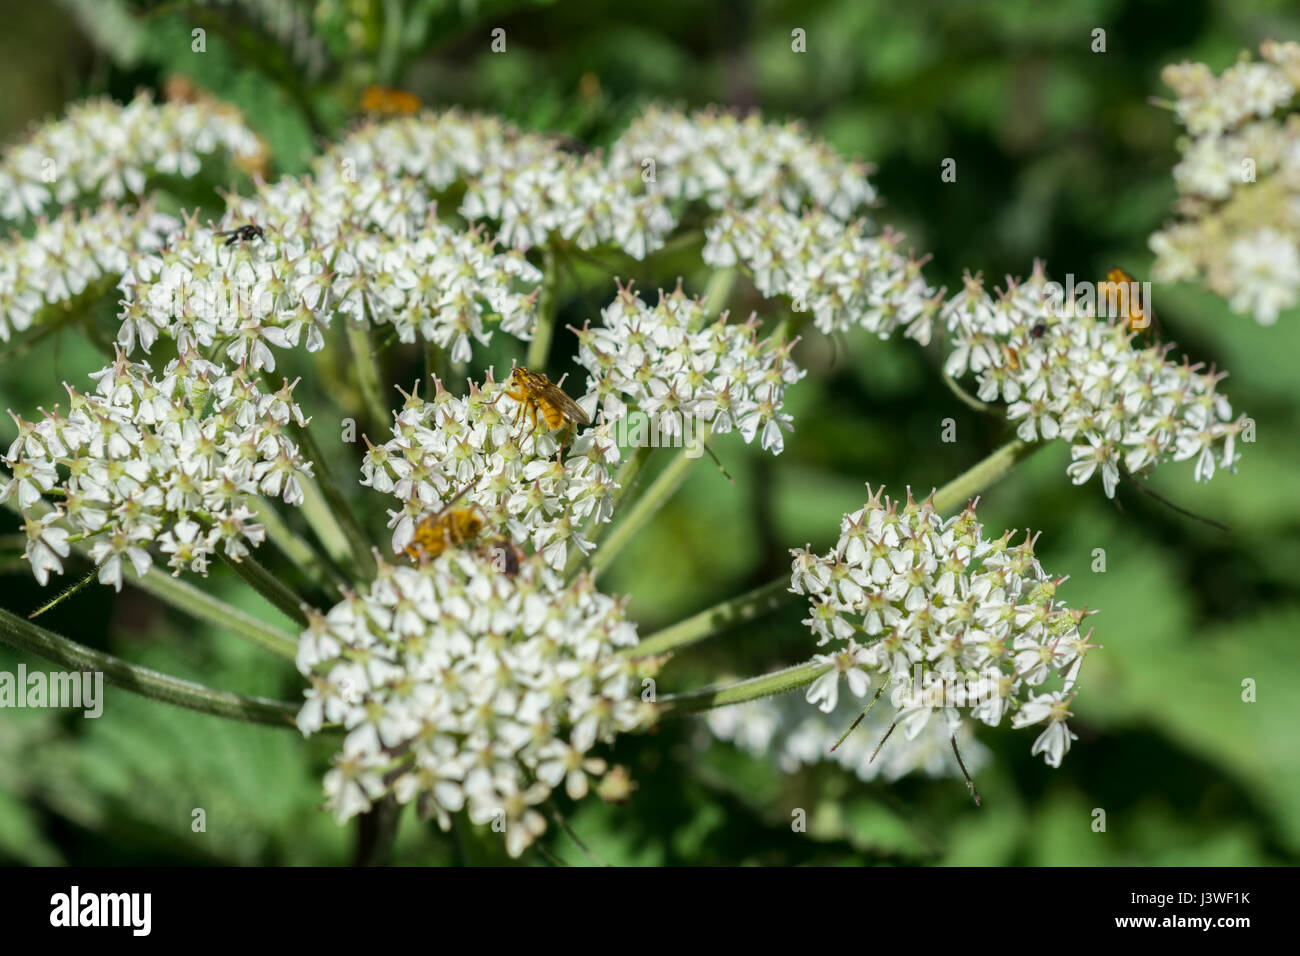 Hogweed flower cluster with Yellow Dung Fly (Scathophaga sterconia) feeding on nectar, plus a wasp-type insect which - Stock Image